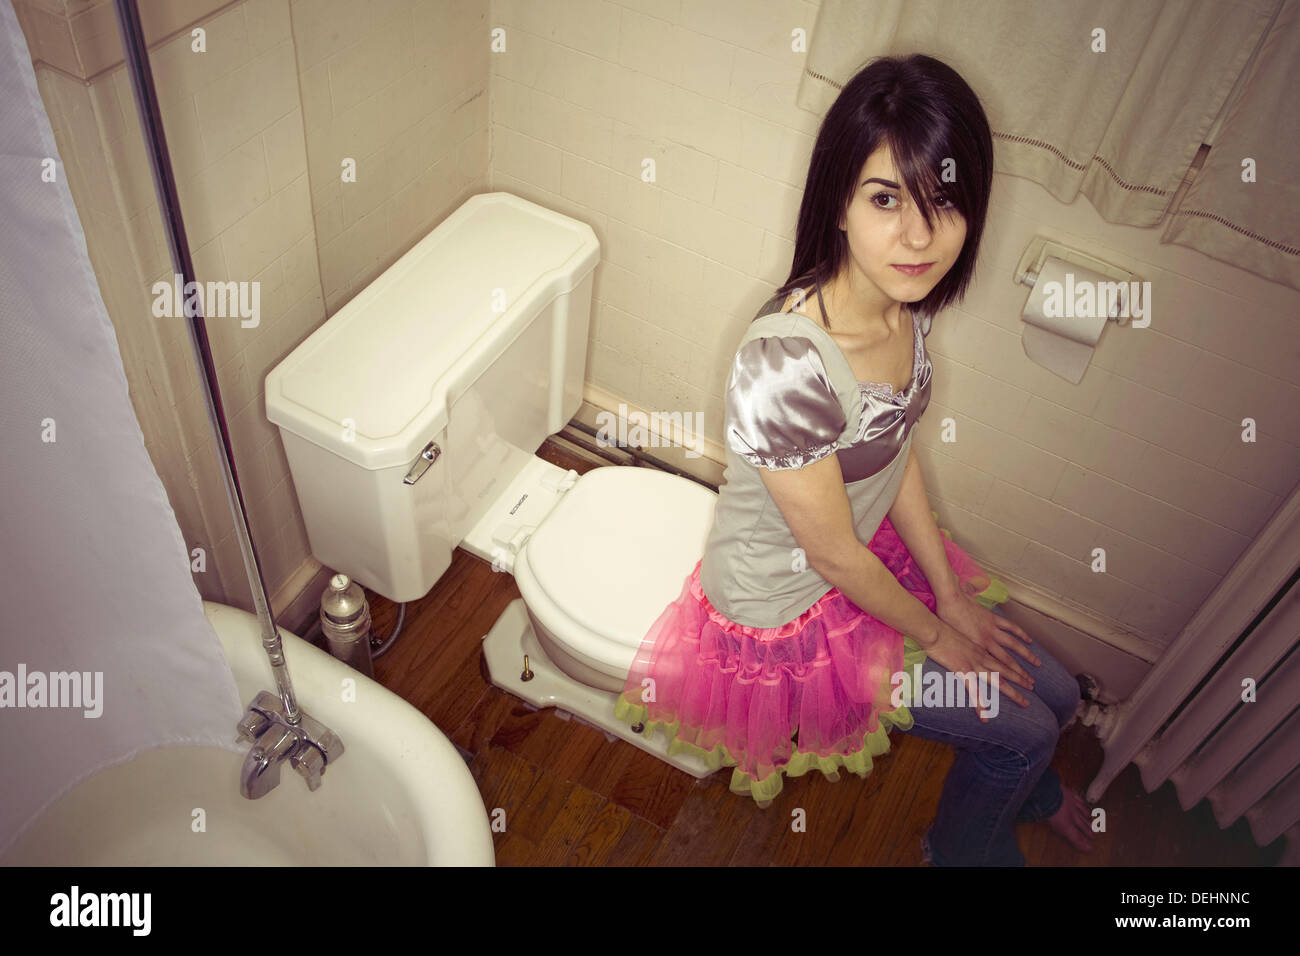 Young Girl Sitting On Toilet Stock Photos & Young Girl